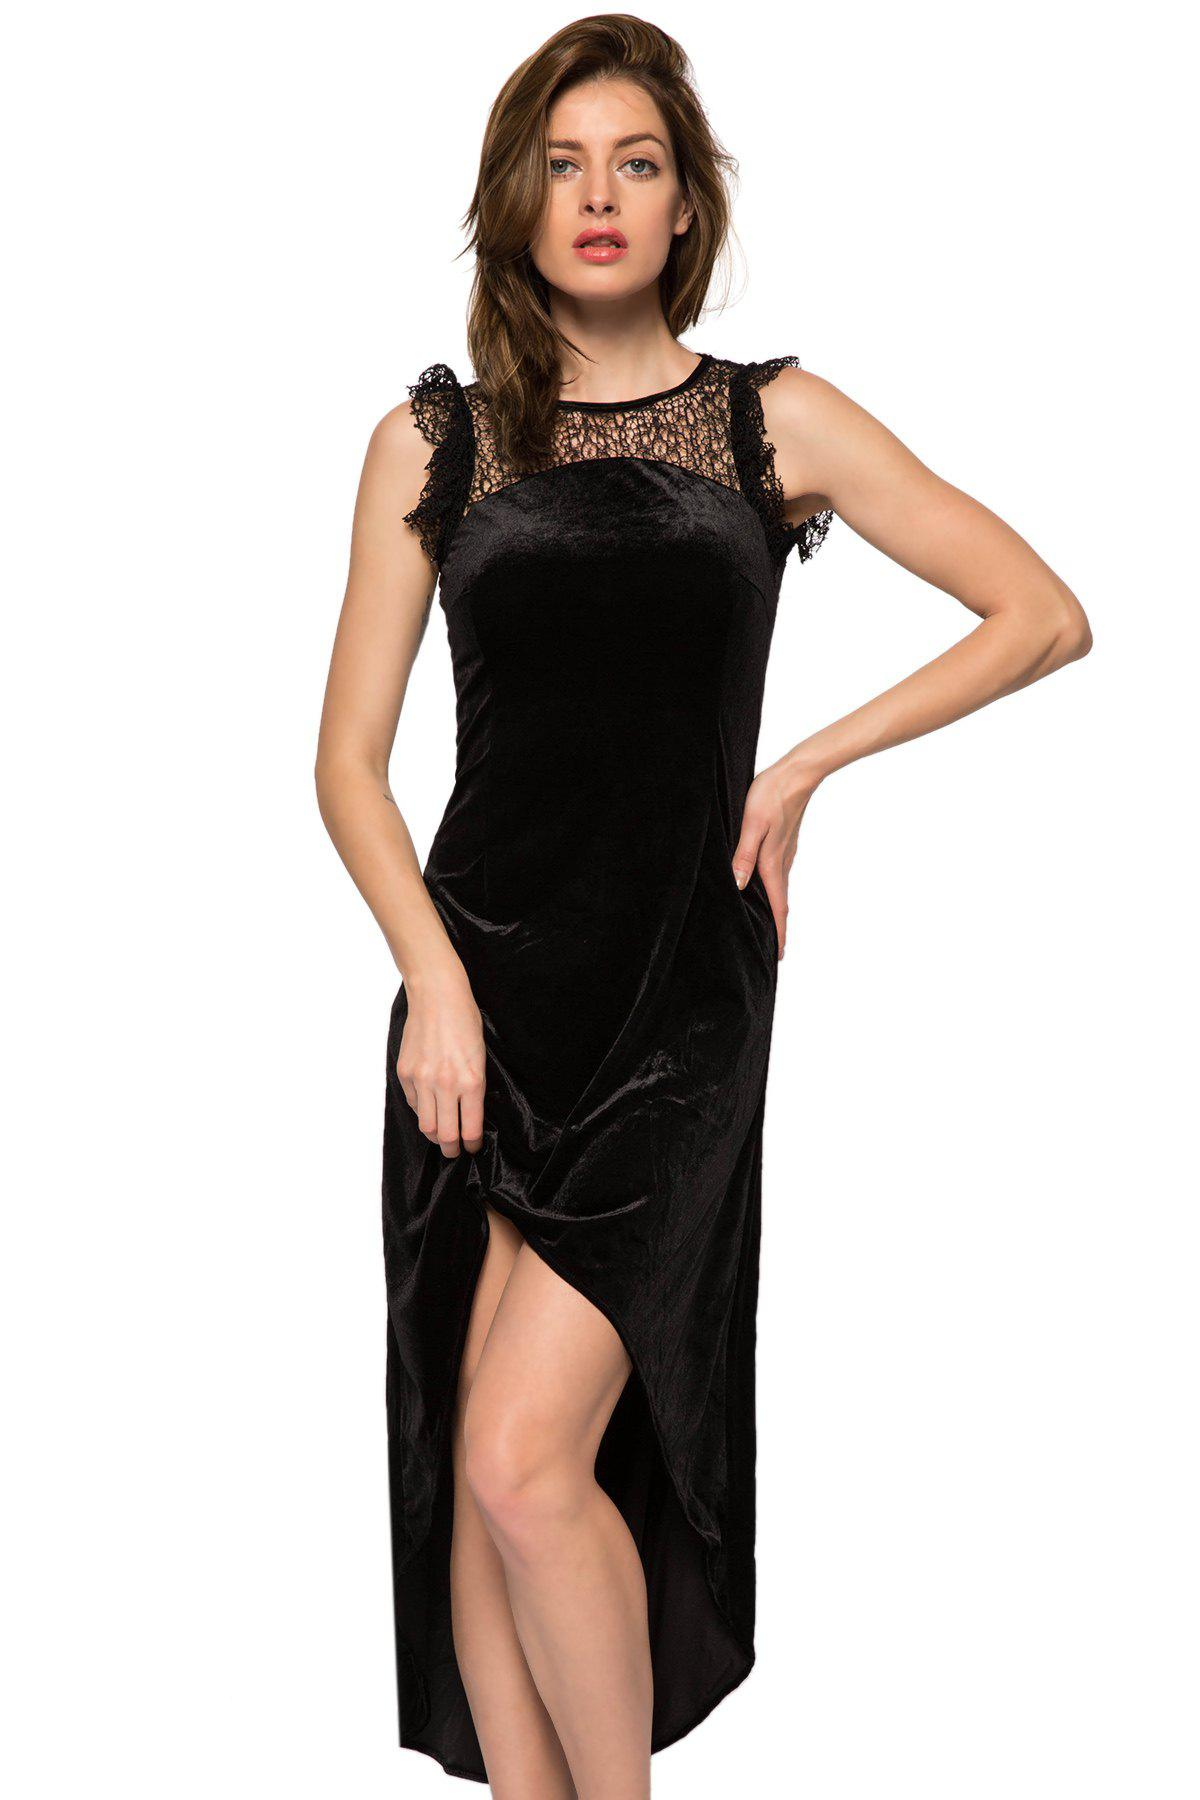 Fashionable Round Collar Sleeveless Lace Splicing High-low Hem Women's Dress - BLACK XS